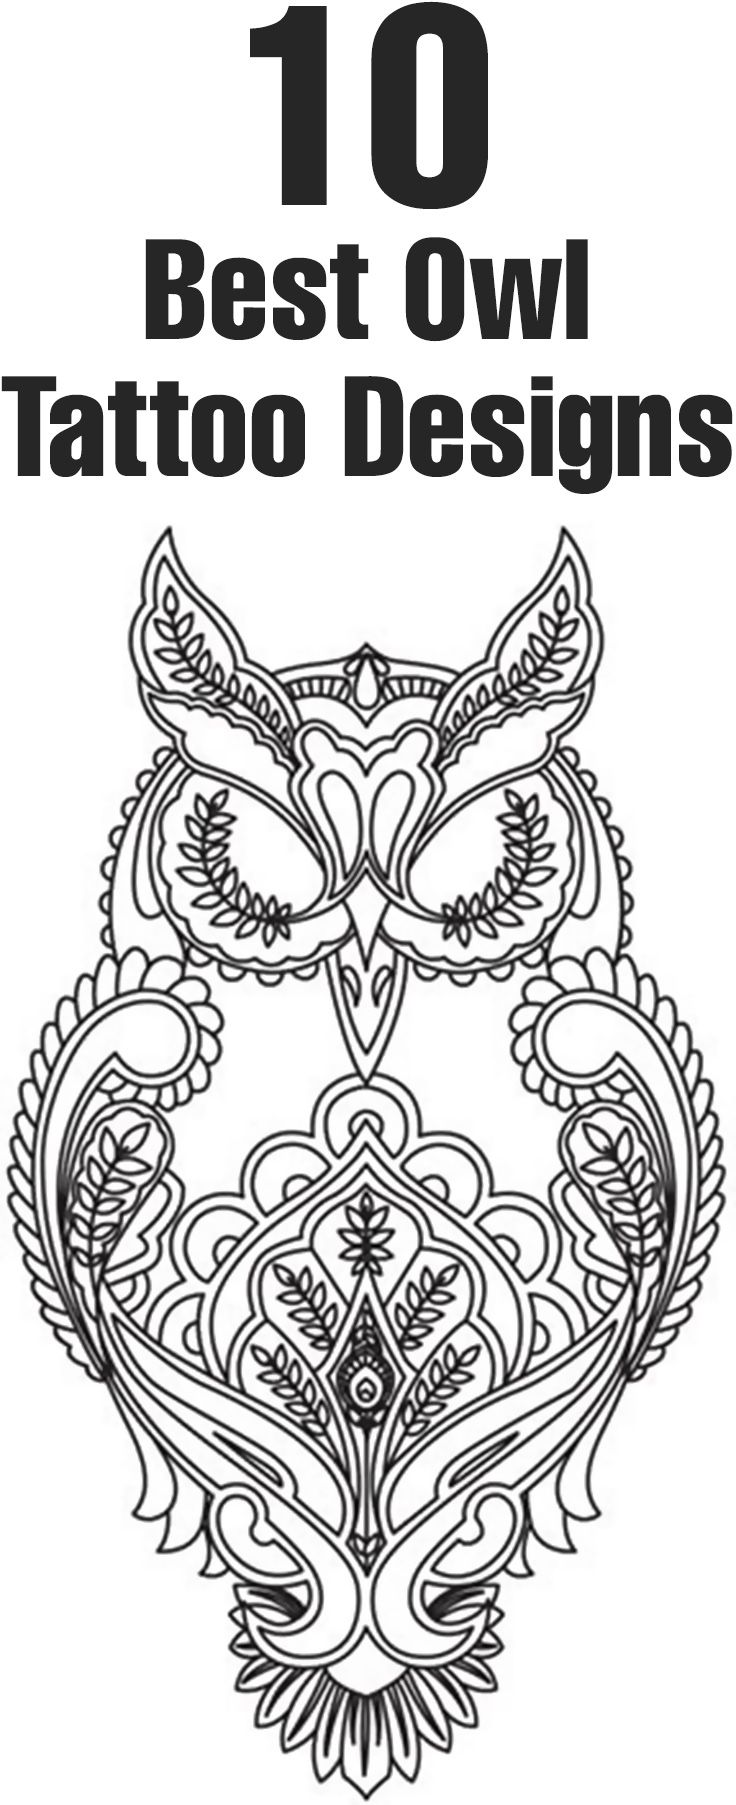 Best Owl Tattoo Designs – Our Top 10: Tattoo Ideas, Tattoo Designs ...